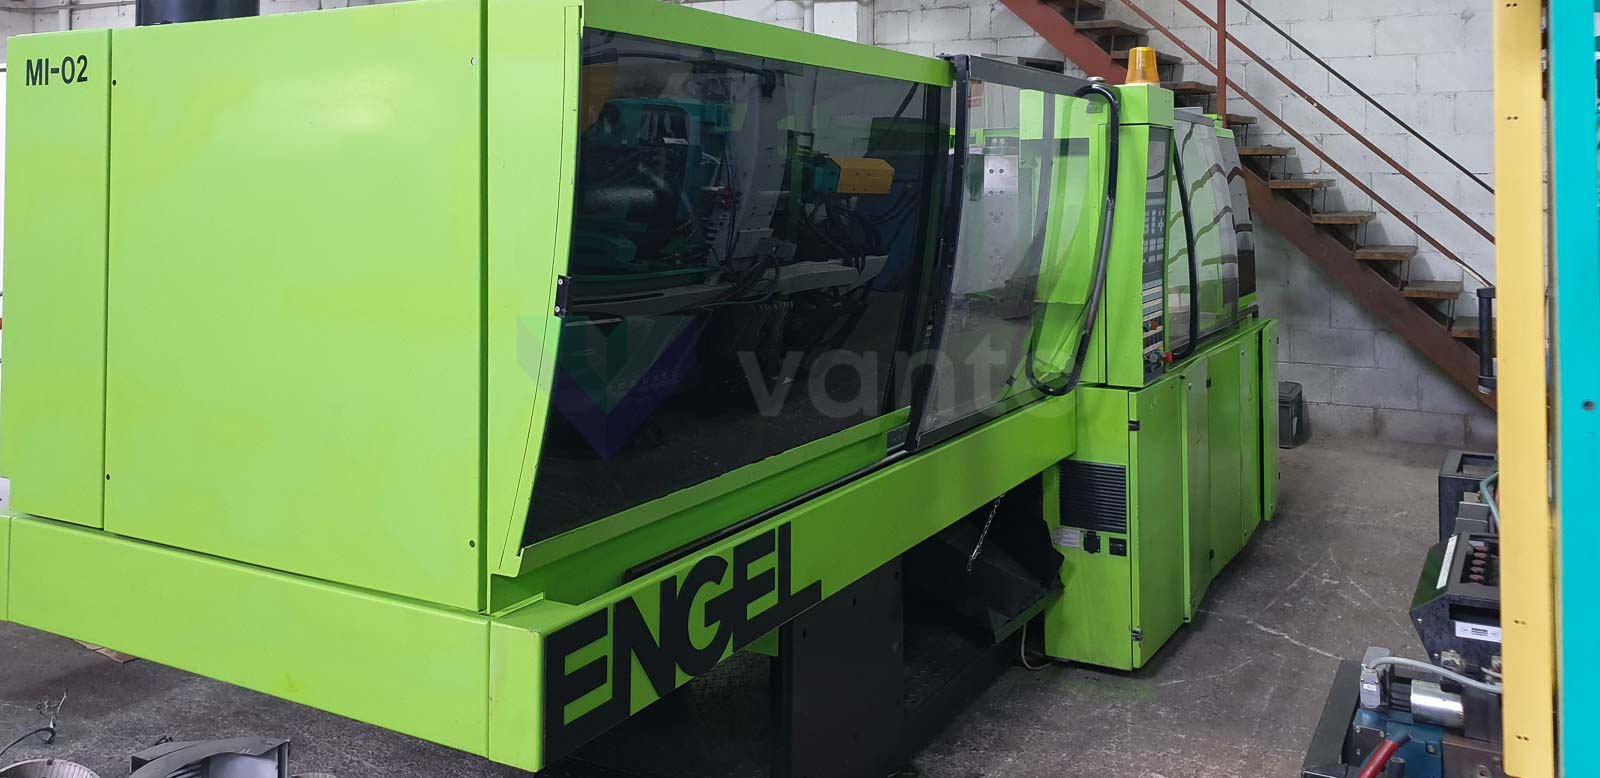 Machine de moulage par injection 125t ENGEL ES 500 / 125 HL-V (1999) id10563